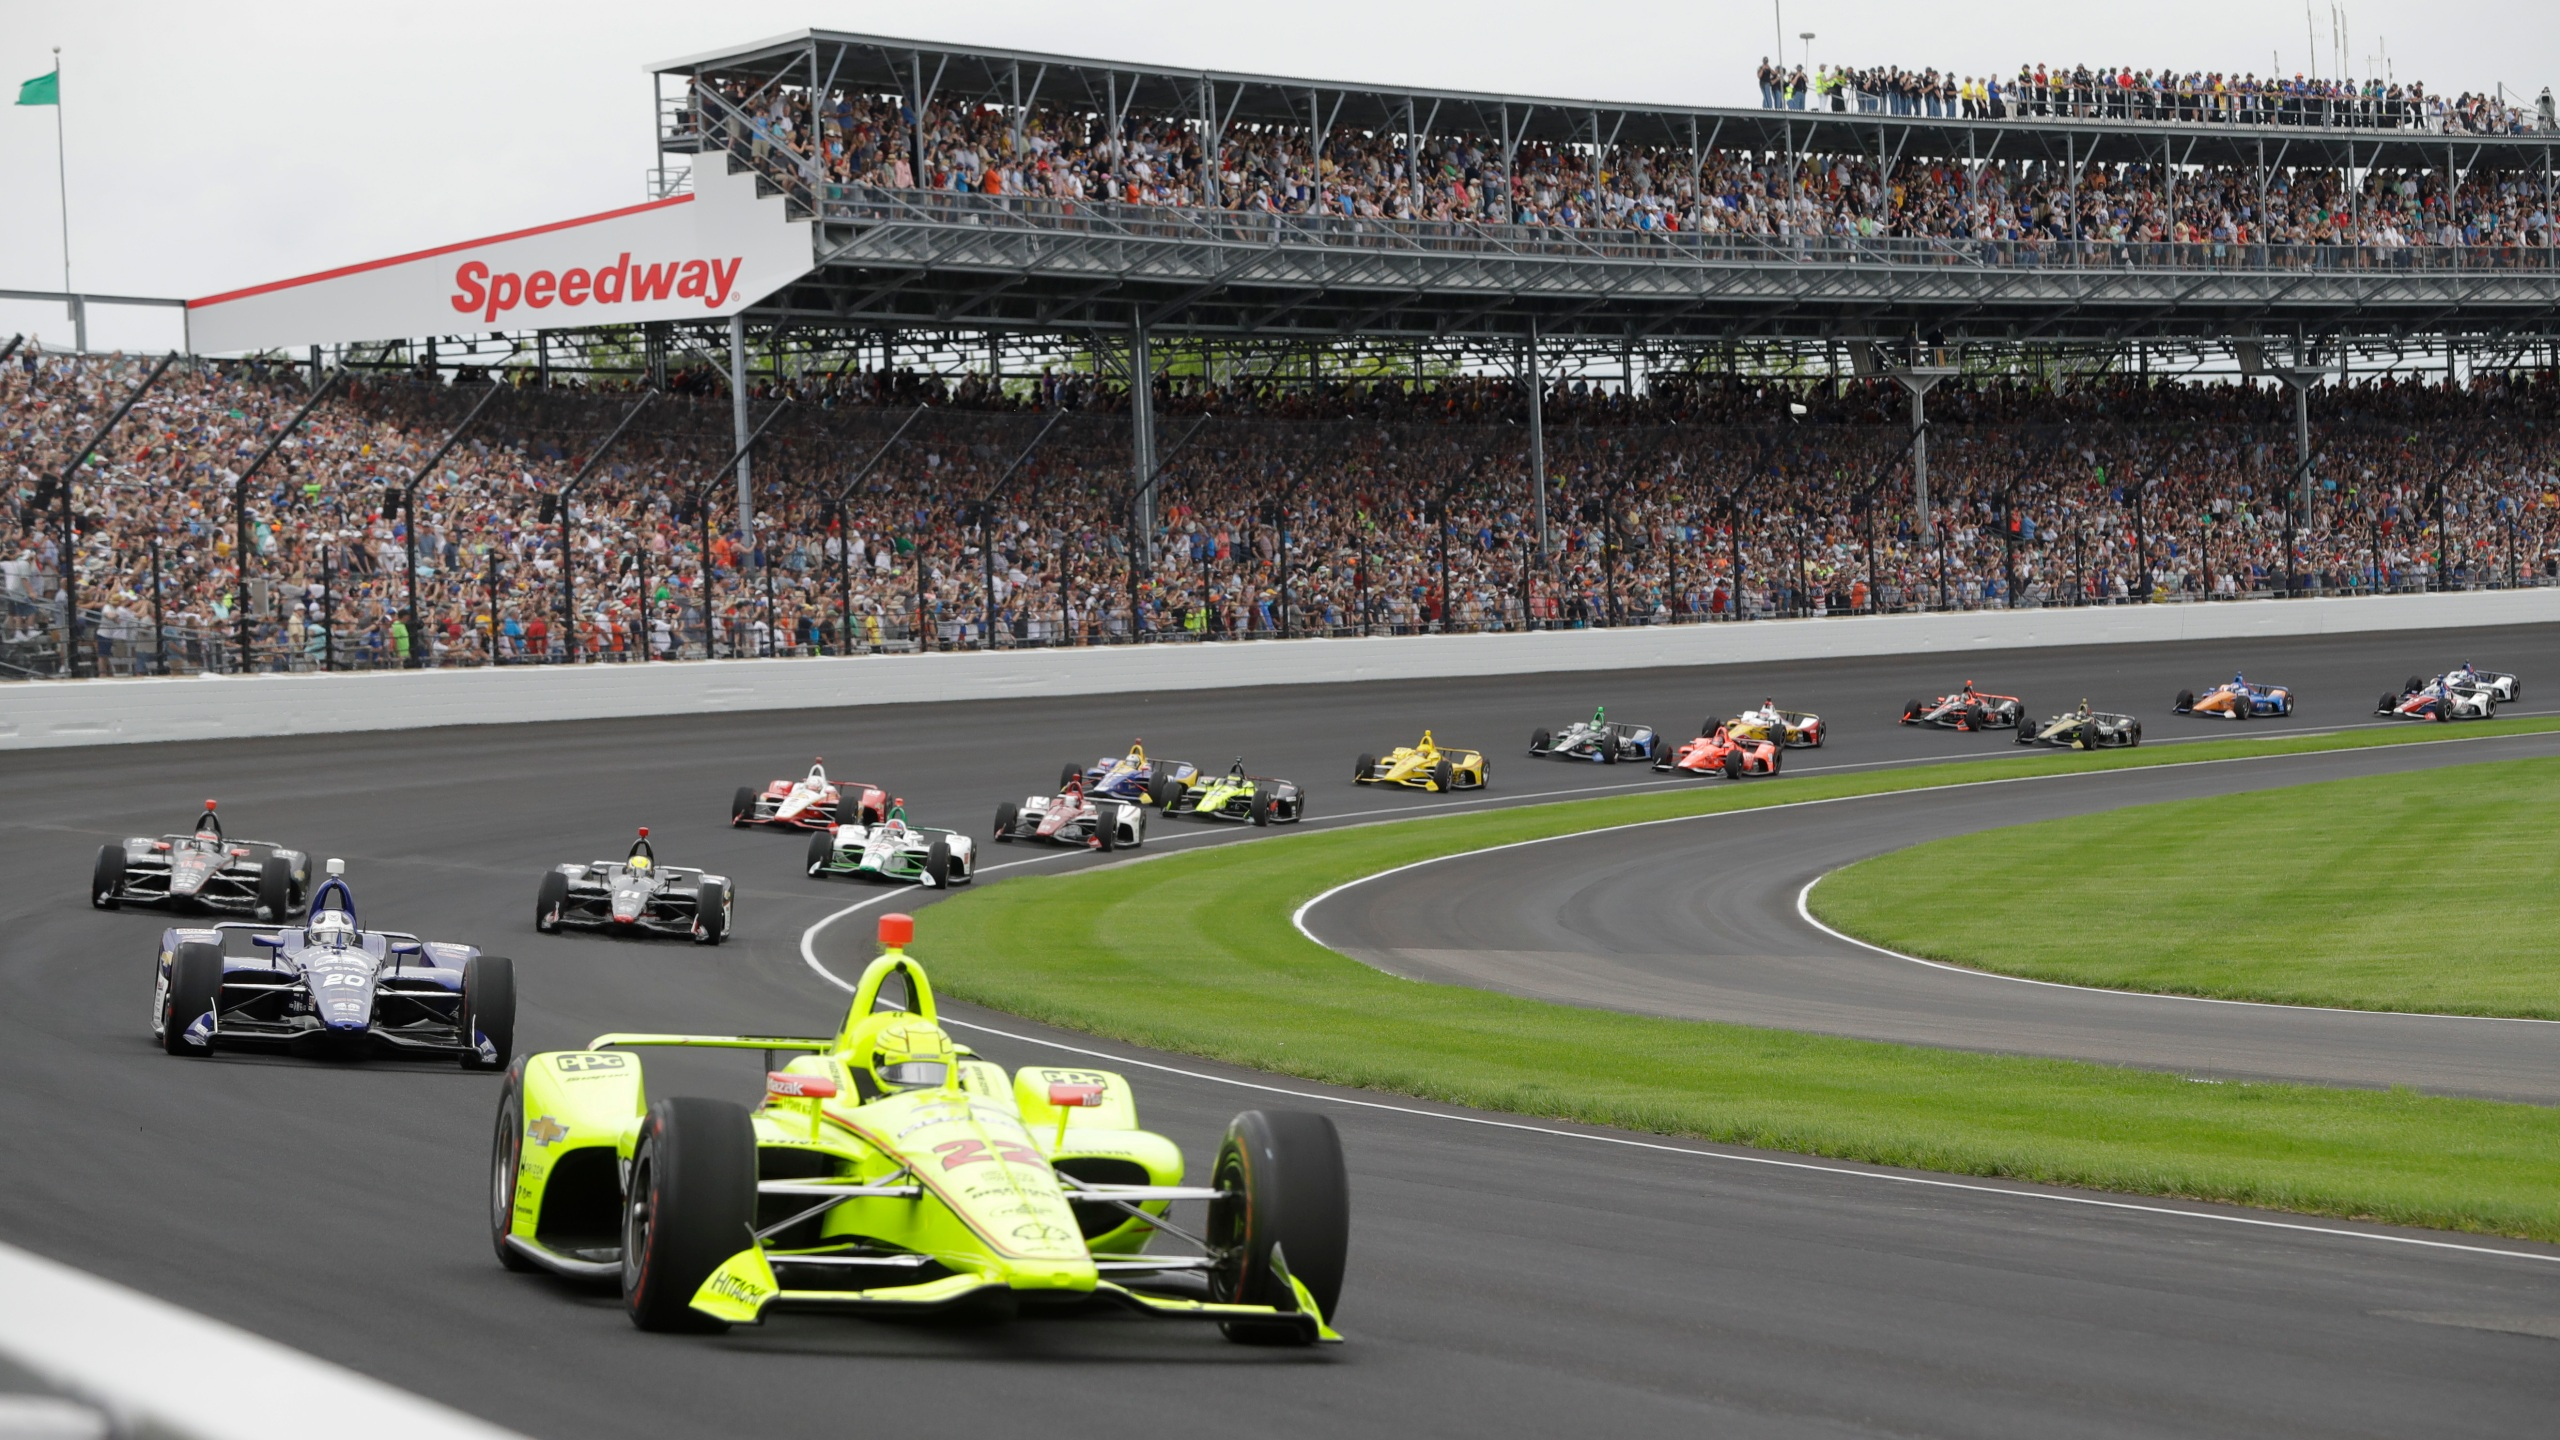 Simon Pagenaud, of France, leads the field through the first turn on the start of the Indianapolis 500 in 2019 The Indianapolis 500 scheduled for May 24 has been postponed until August because of the coronavirus pandemic and won't run on Memorial Day weekend for the first time since 1946. The race will instead be held Aug. 23. (AP Photo/Darron Cummings, File)